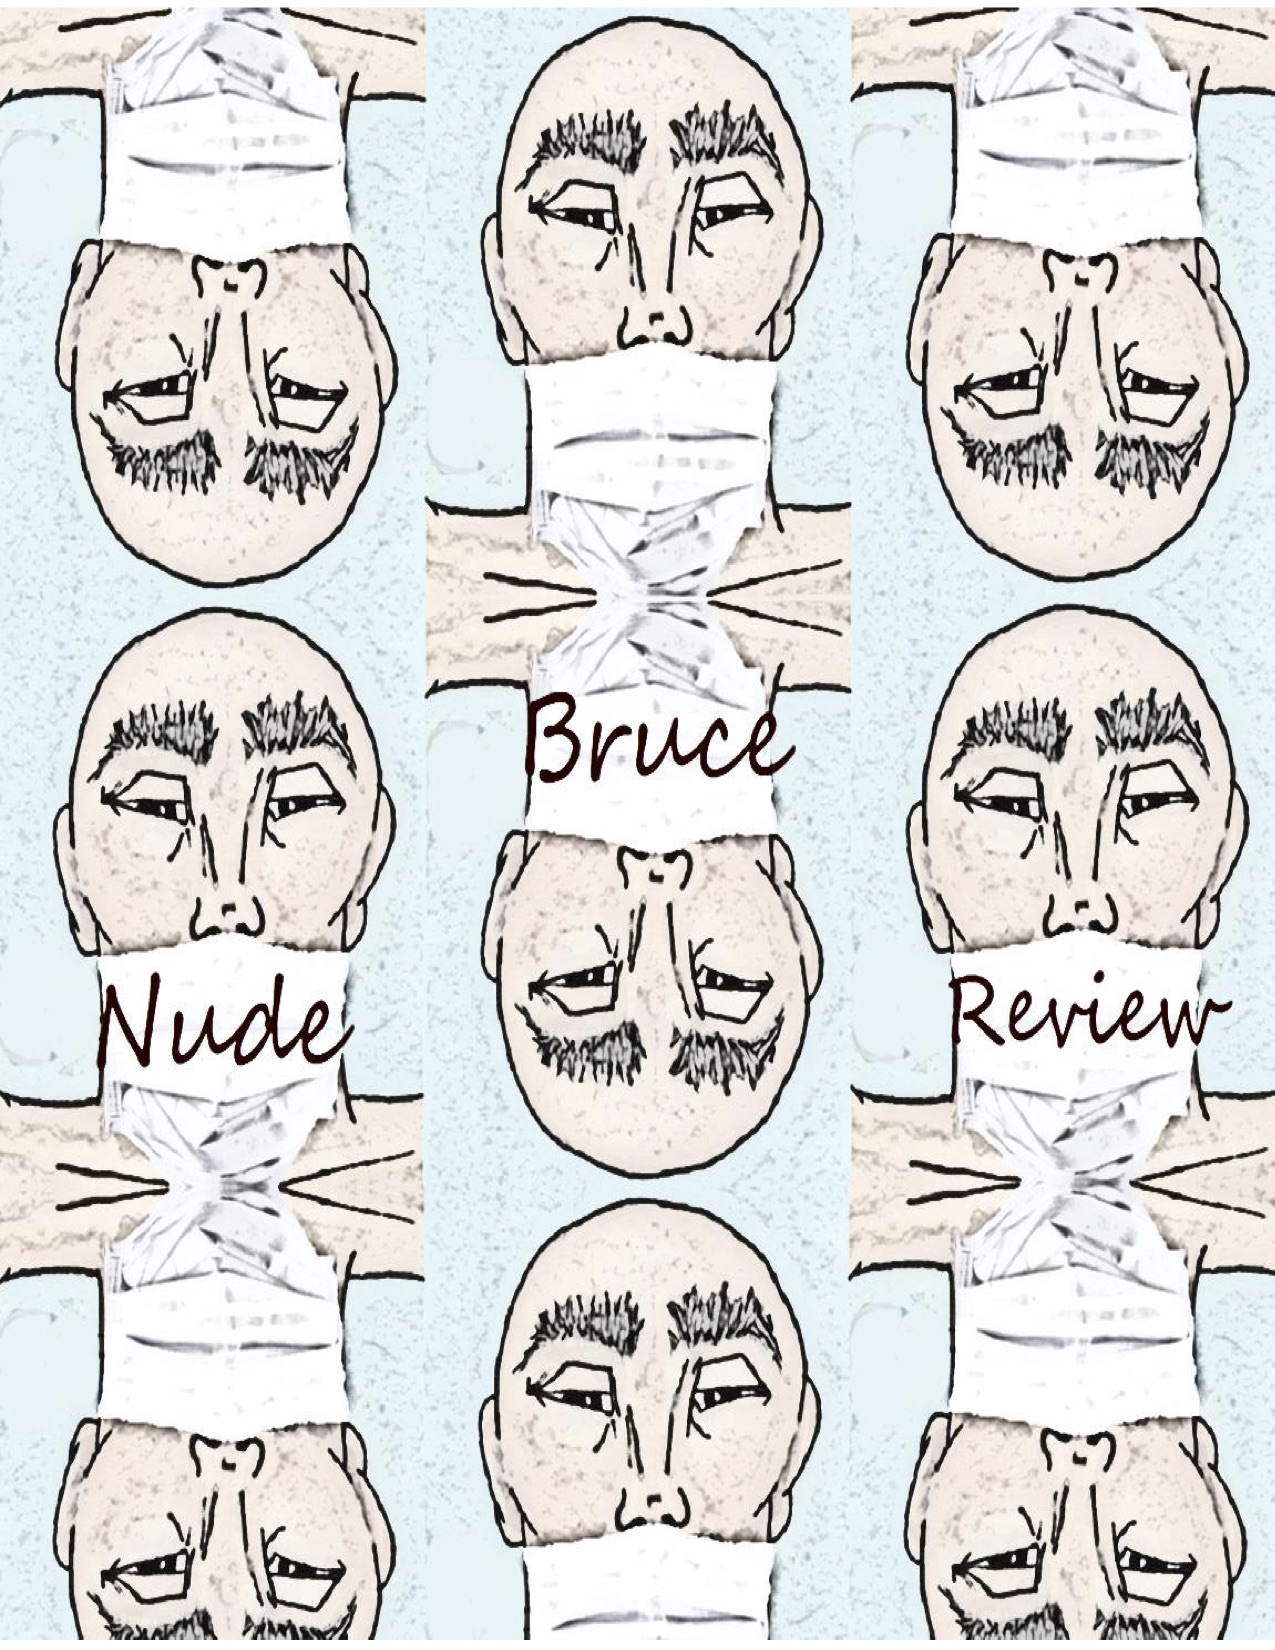 Nude Bruce Review Issue 10 Cover